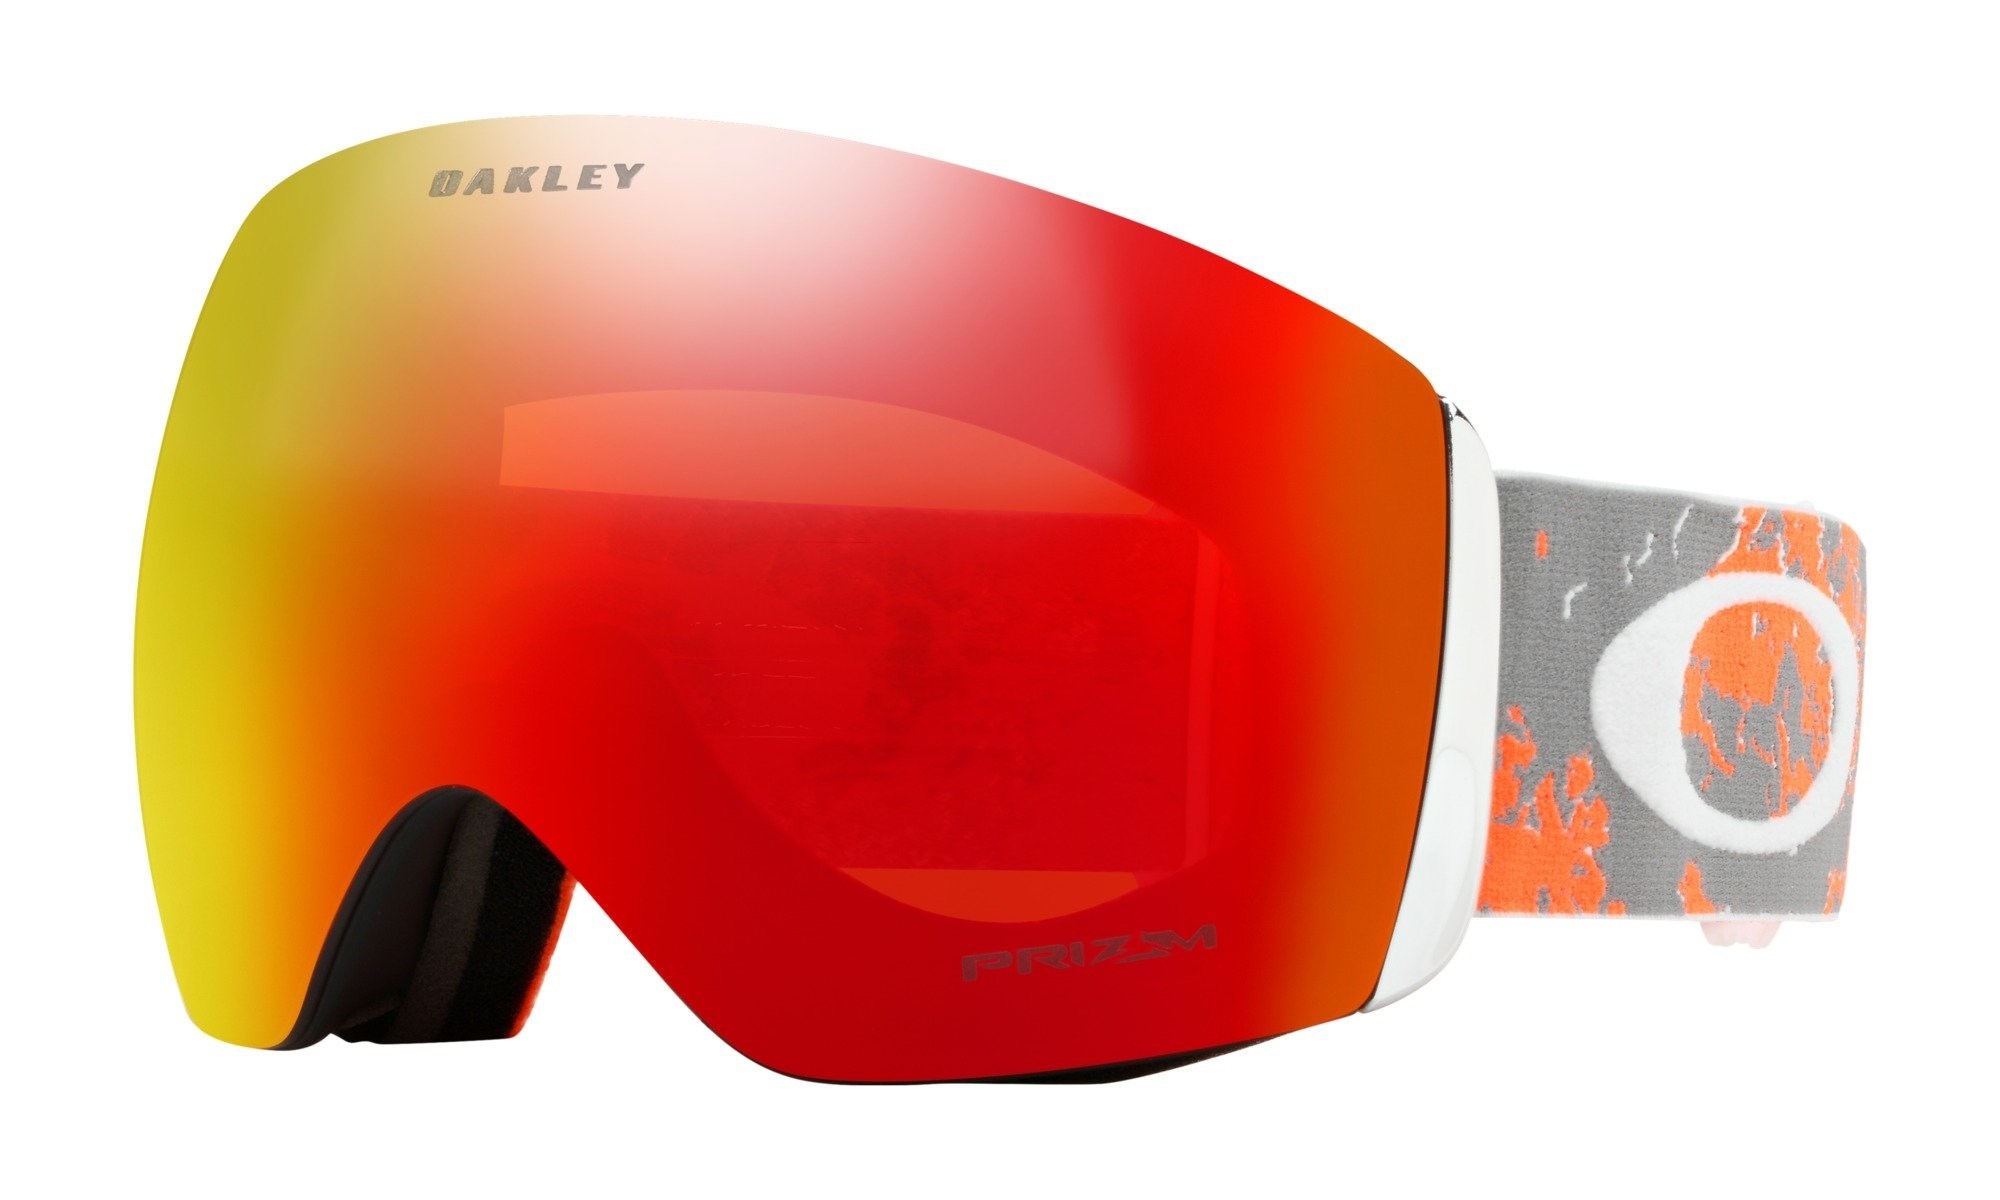 f05a6e8b63d3 Oakley Flight Deck Ski Goggles 2019 ArcticFracture Orange Prizm Torch. 0  (Be the first to add a review!)